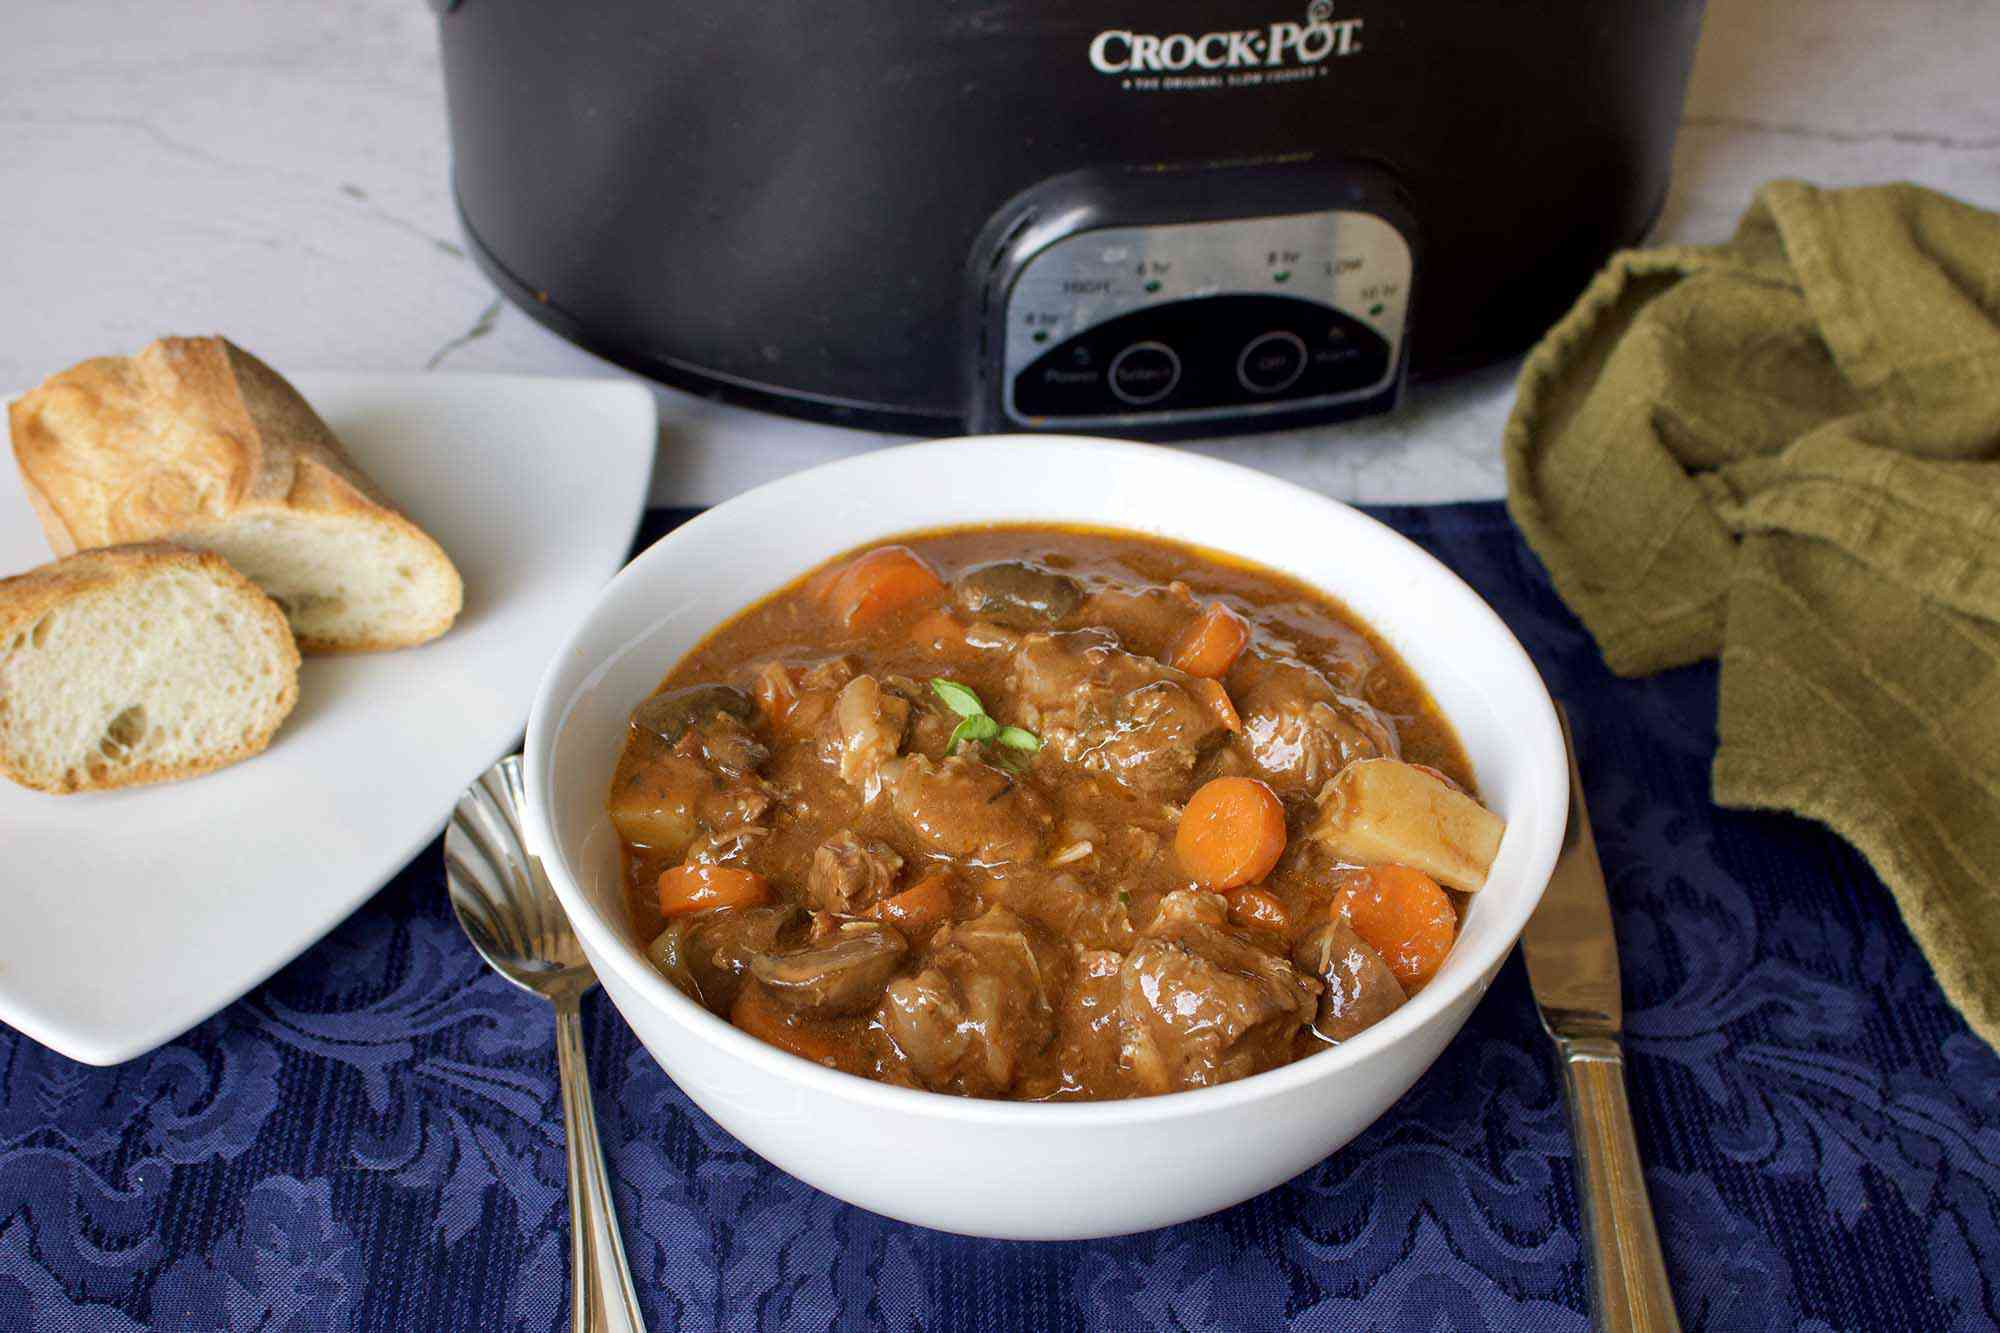 Slow Cooker Beef Burgundy (Boeuf Bourguignon) in a bowl set in front of a crock pot. Silverware, bread, a place mat and kitchen towel are surrounding the bowl.